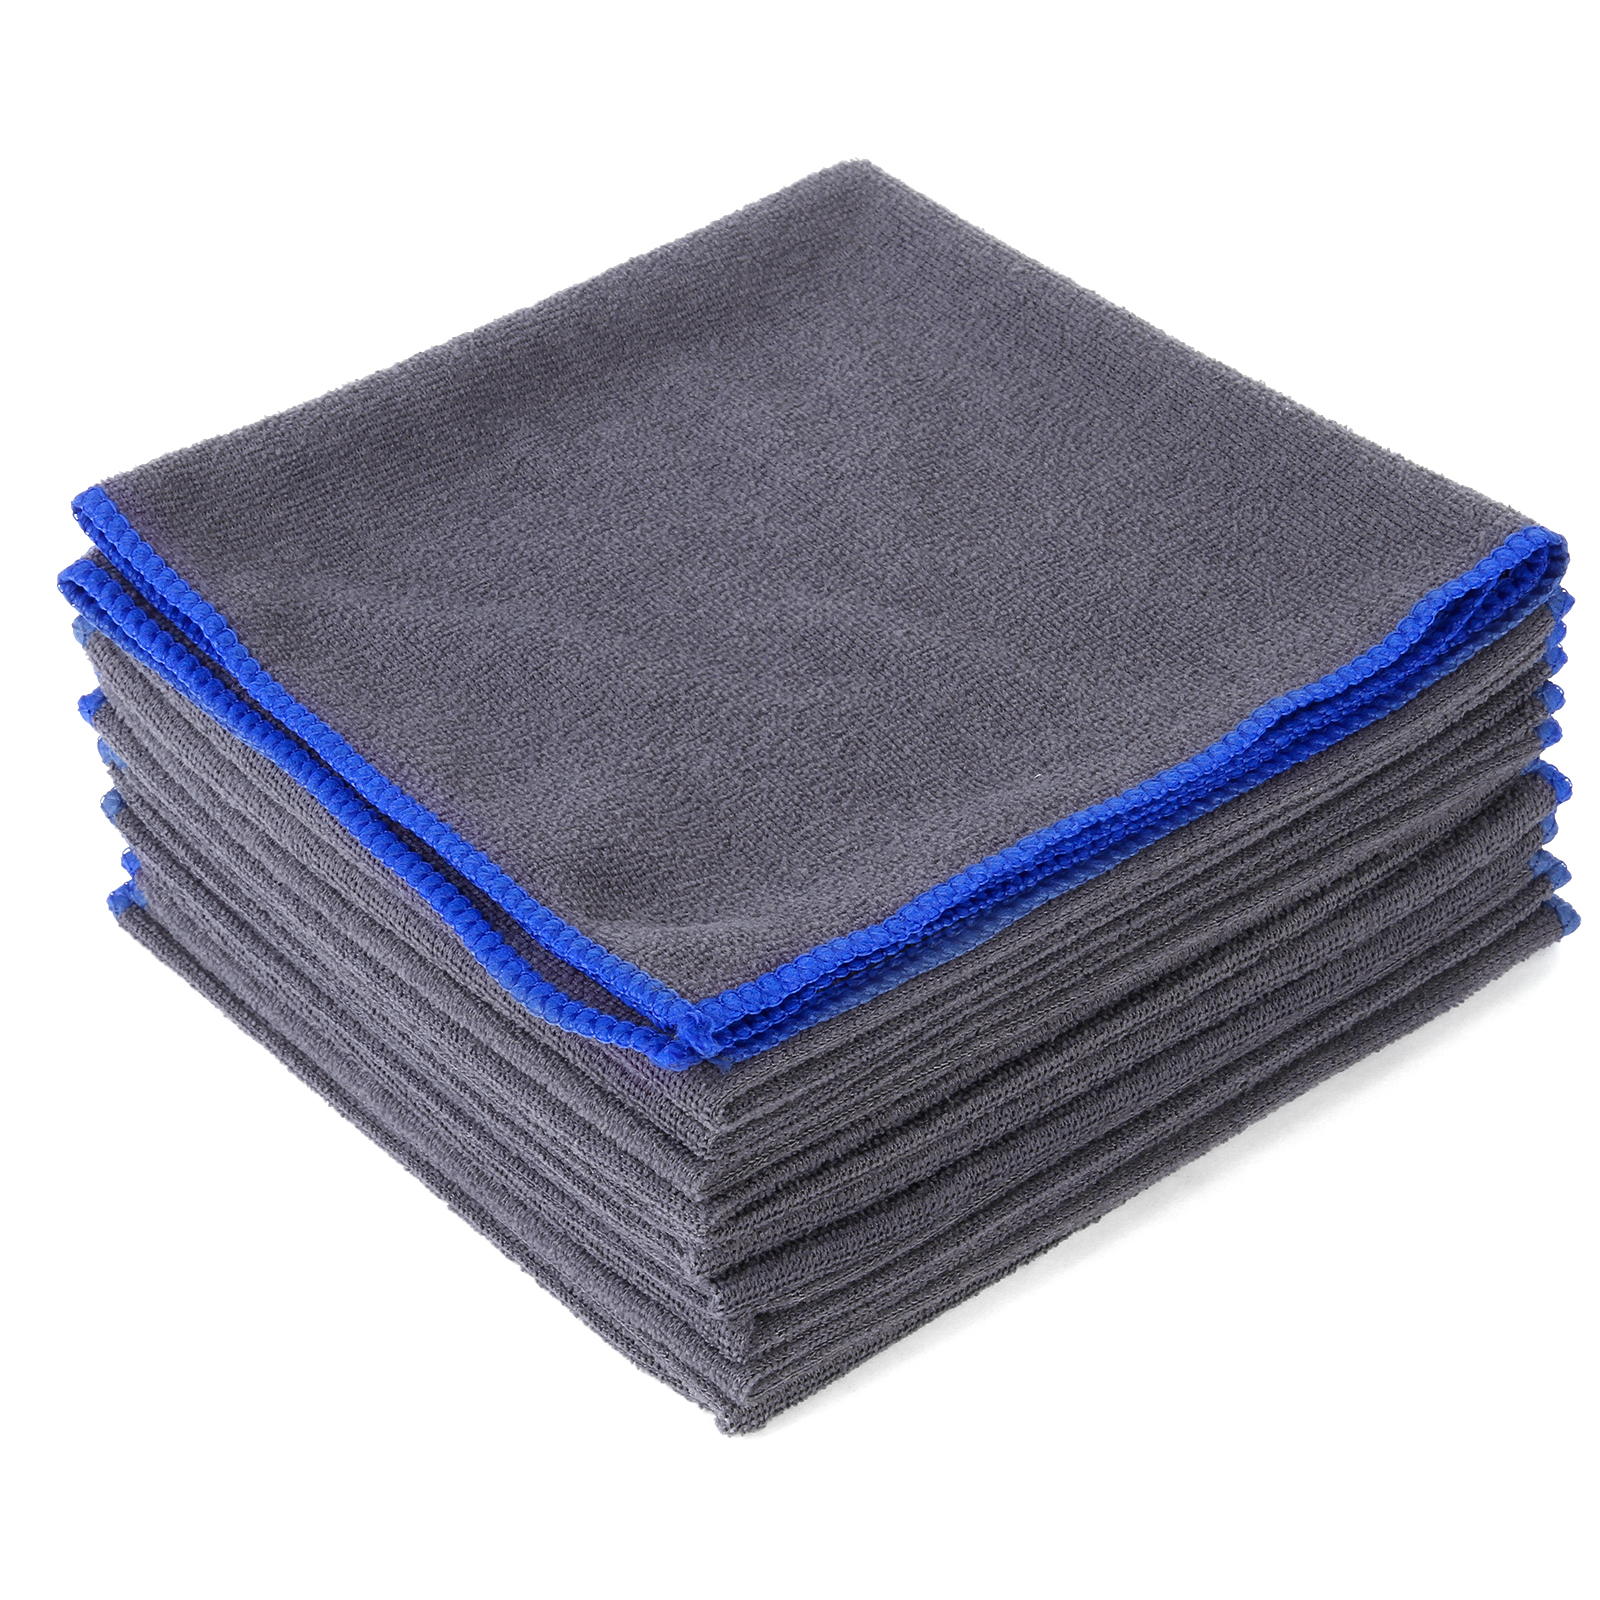 10x serviettes microfibre nettoyage voiture maison nettoyage doux absorbant gris. Black Bedroom Furniture Sets. Home Design Ideas